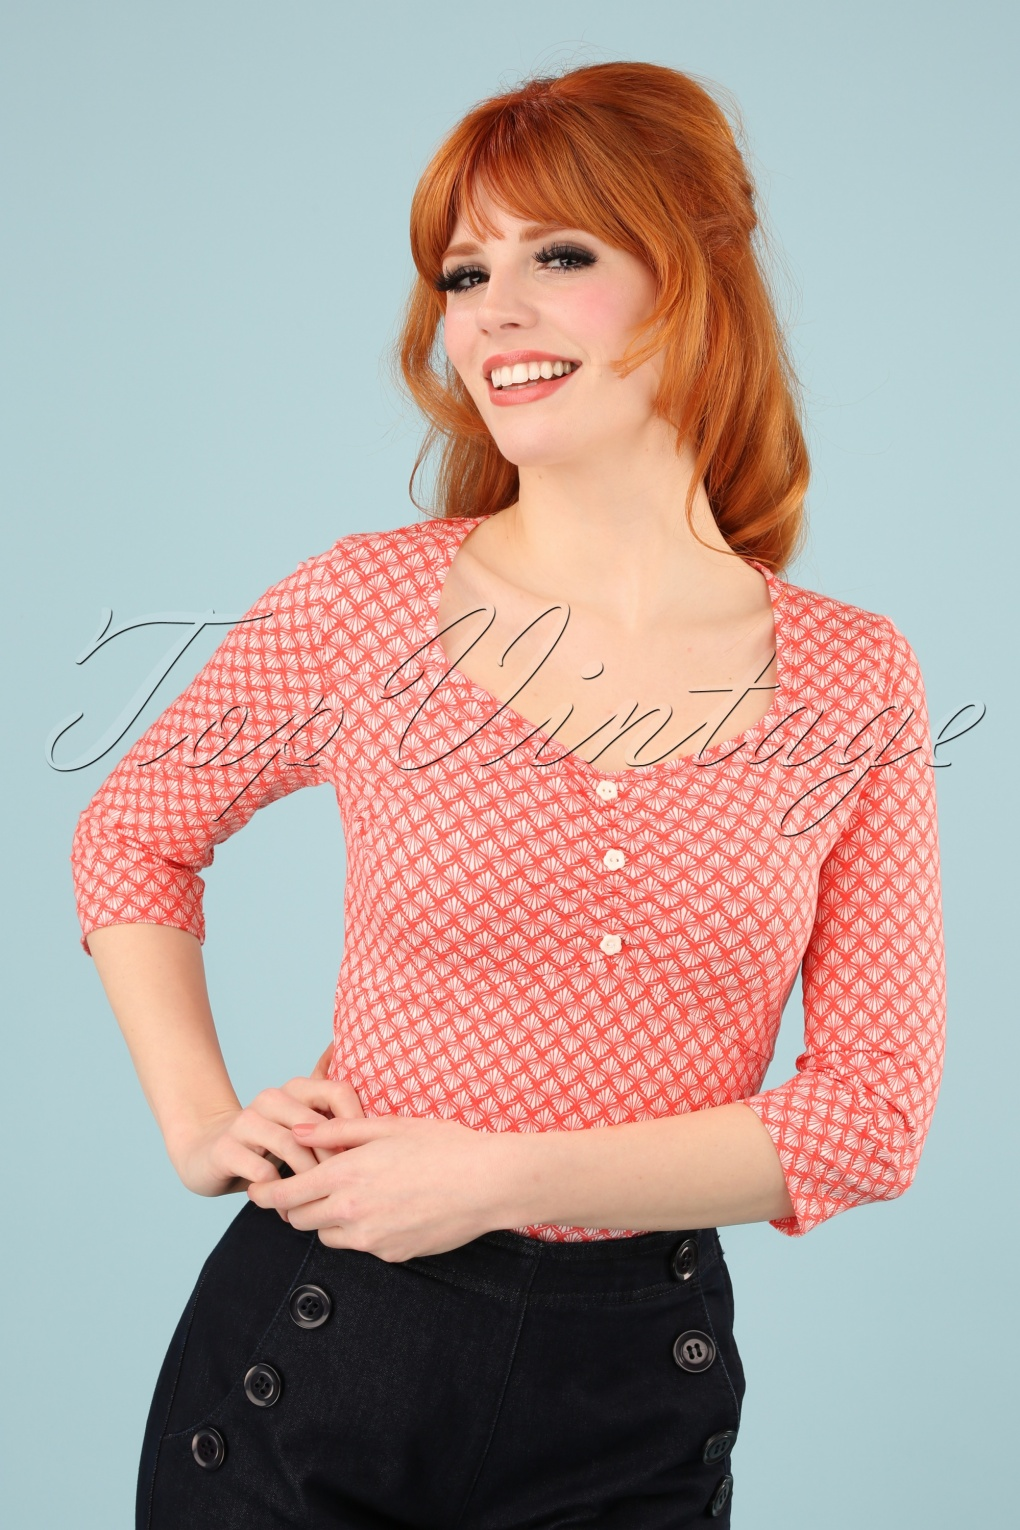 60s Shirts, T-shirt, Blouses | 70s Shirts, Tops, Vests 60s New Beginnings Top in Art Deco Peach £32.30 AT vintagedancer.com